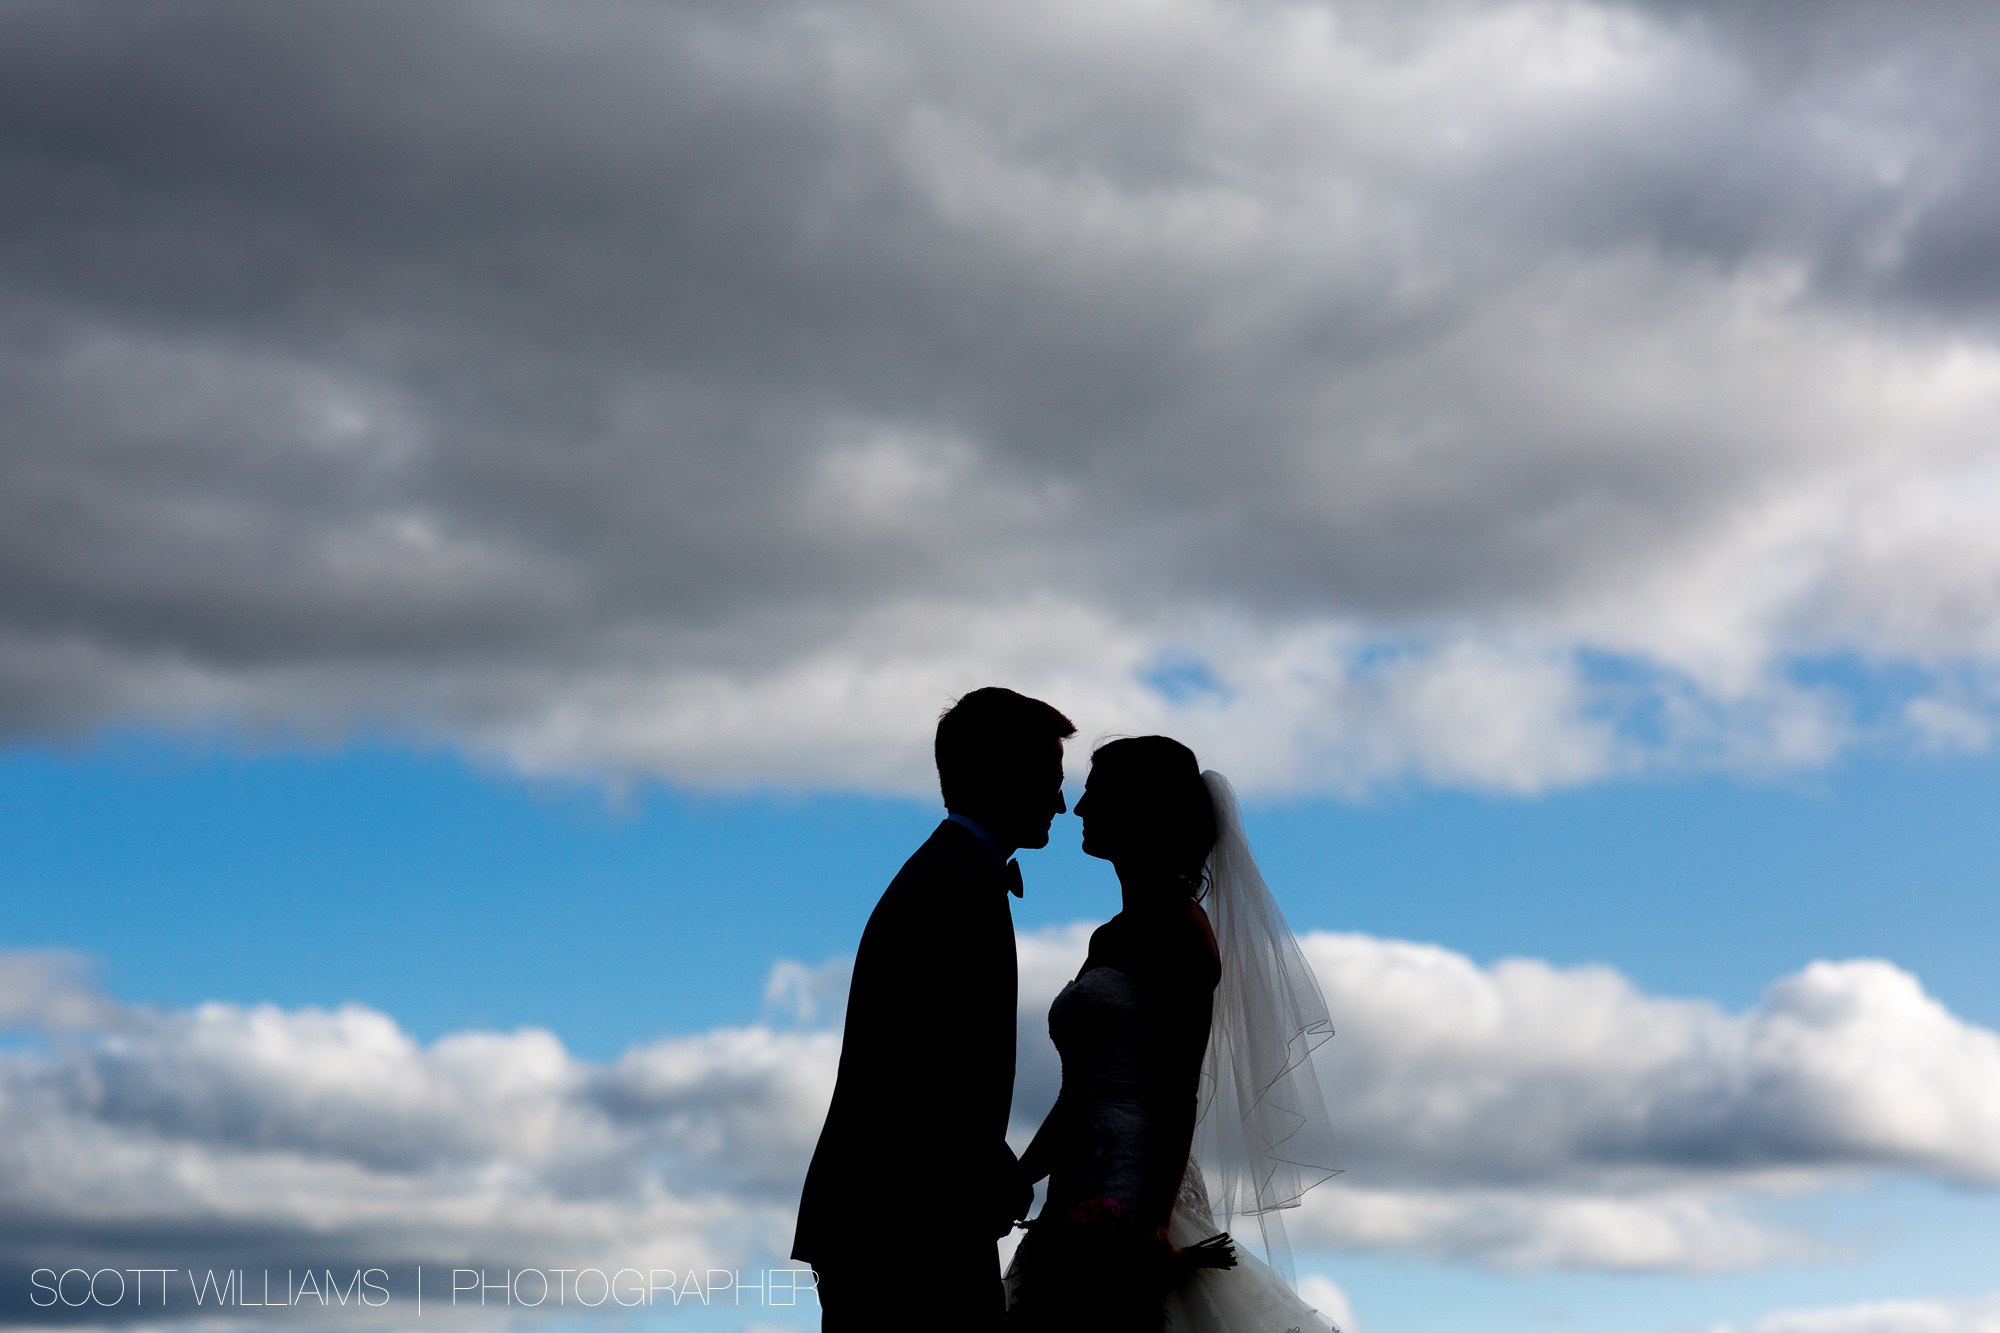 muskoka-wedding-photograph-014.jpg